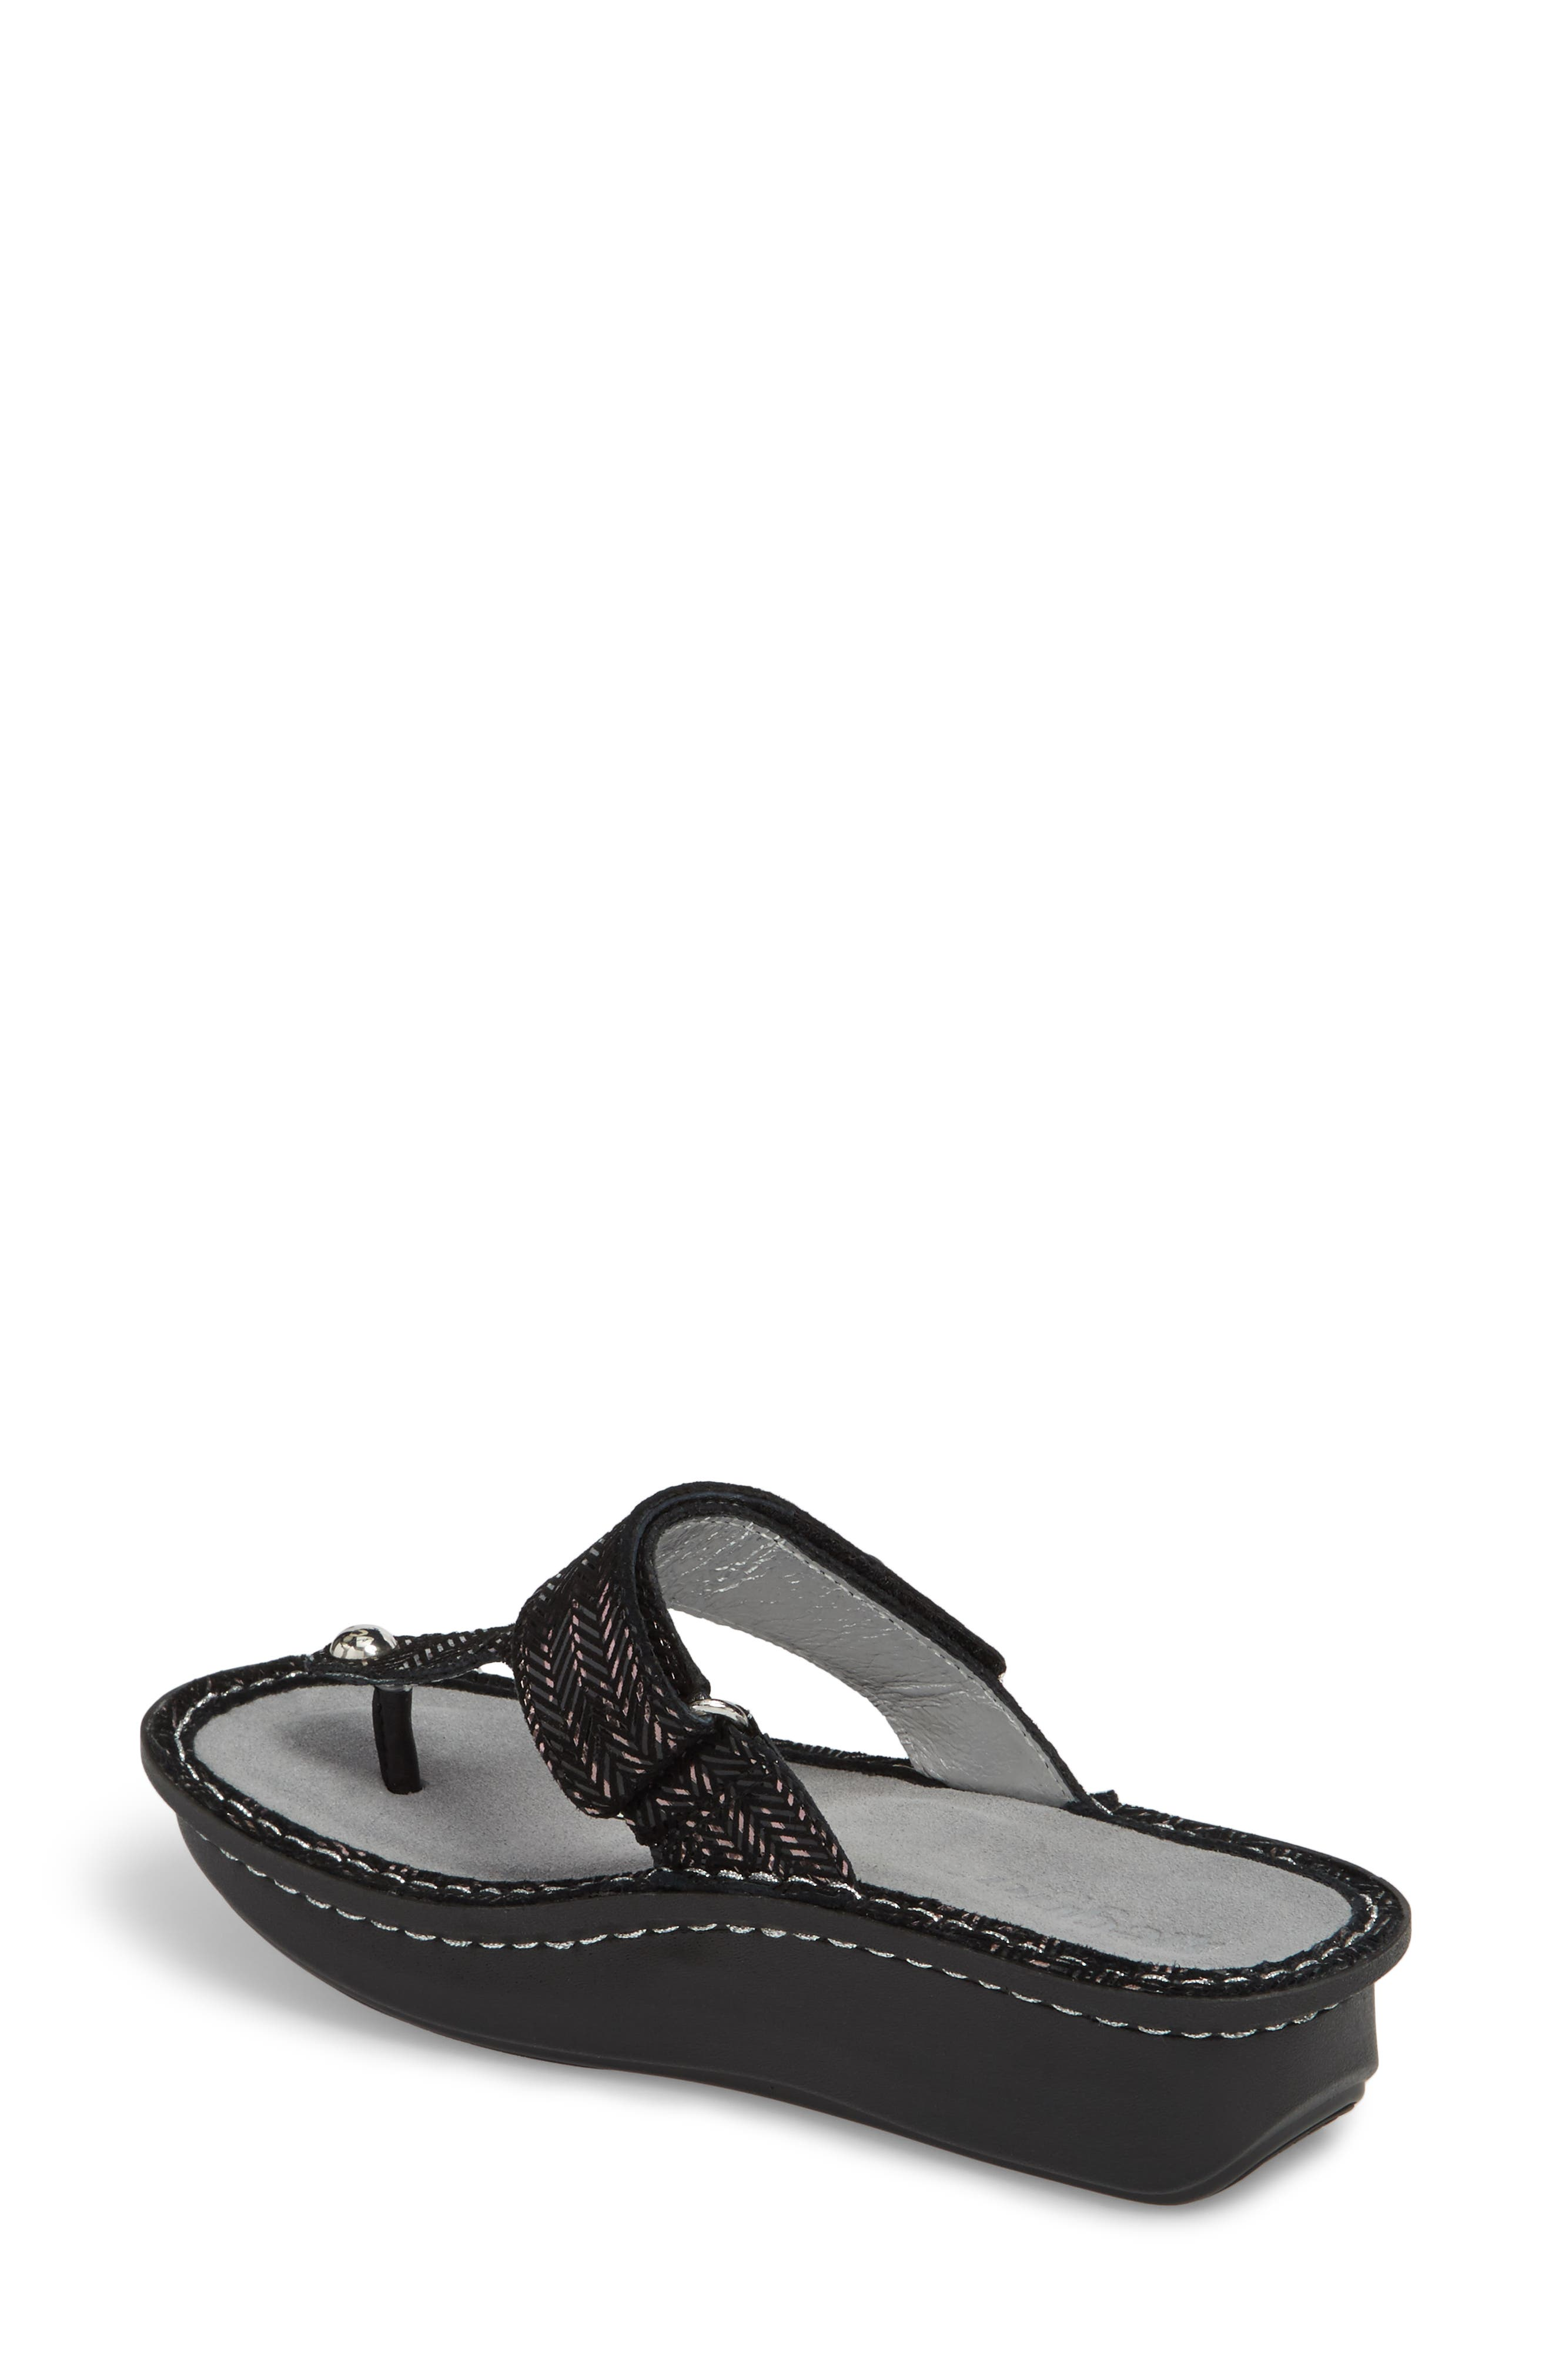 'Carina' Sandal,                             Alternate thumbnail 2, color,                             CHAINED BLACK LEATHER